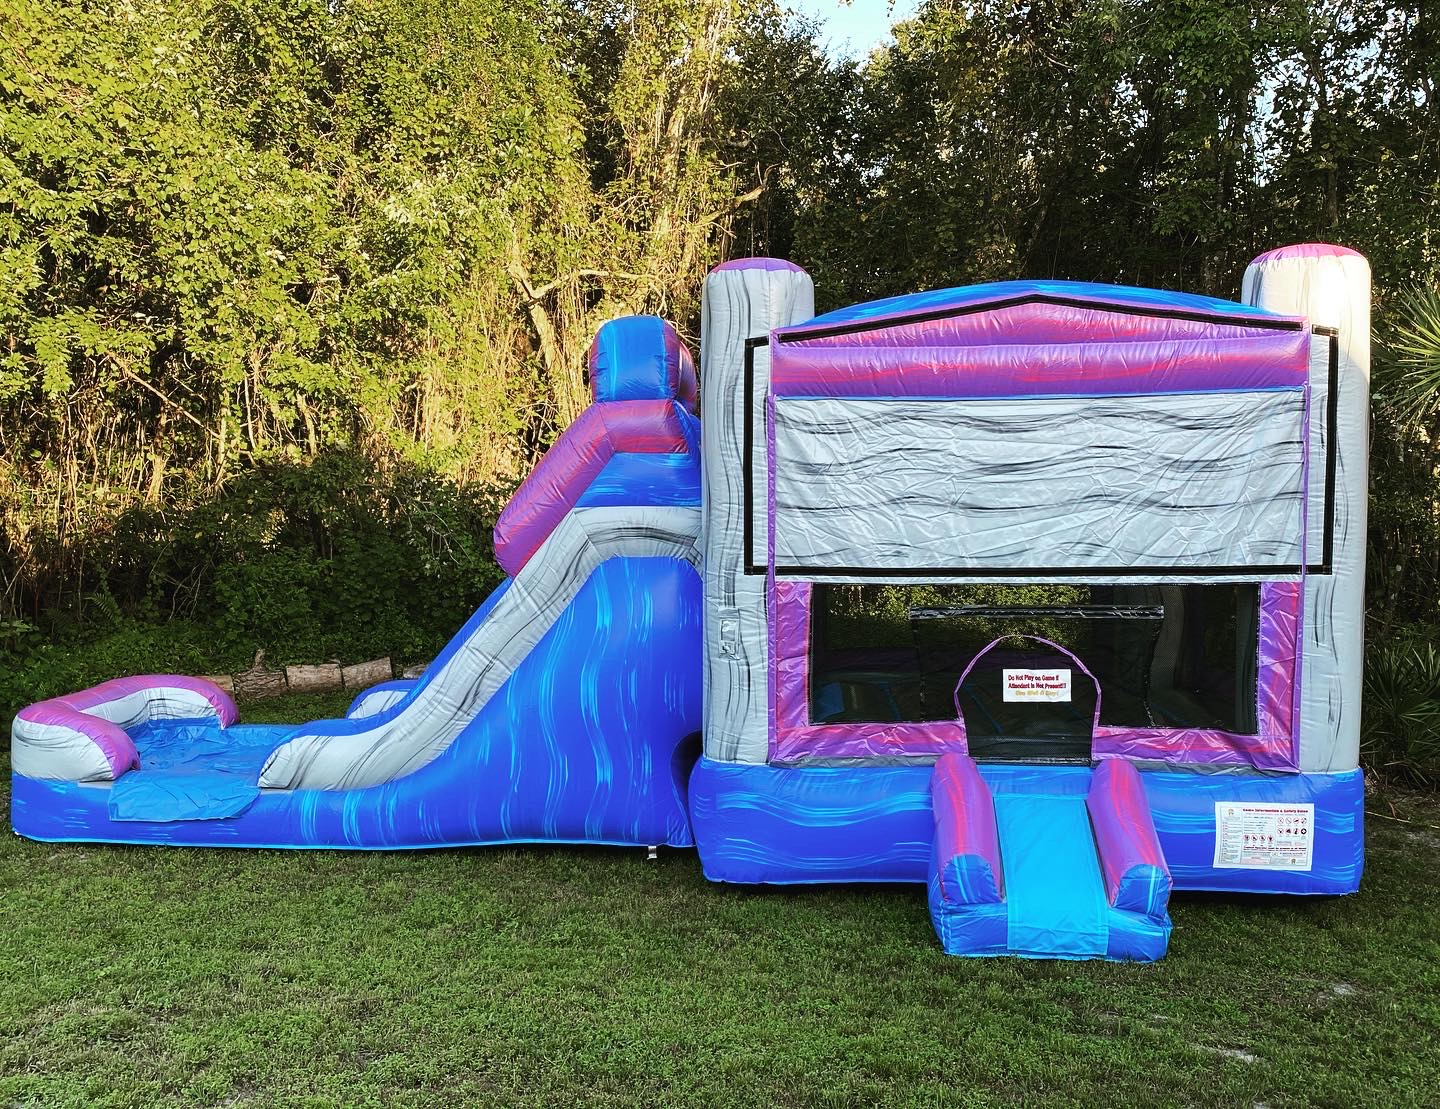 https://www.bouncewithfuntimes.com/Minneola-bounce-house-rentals/